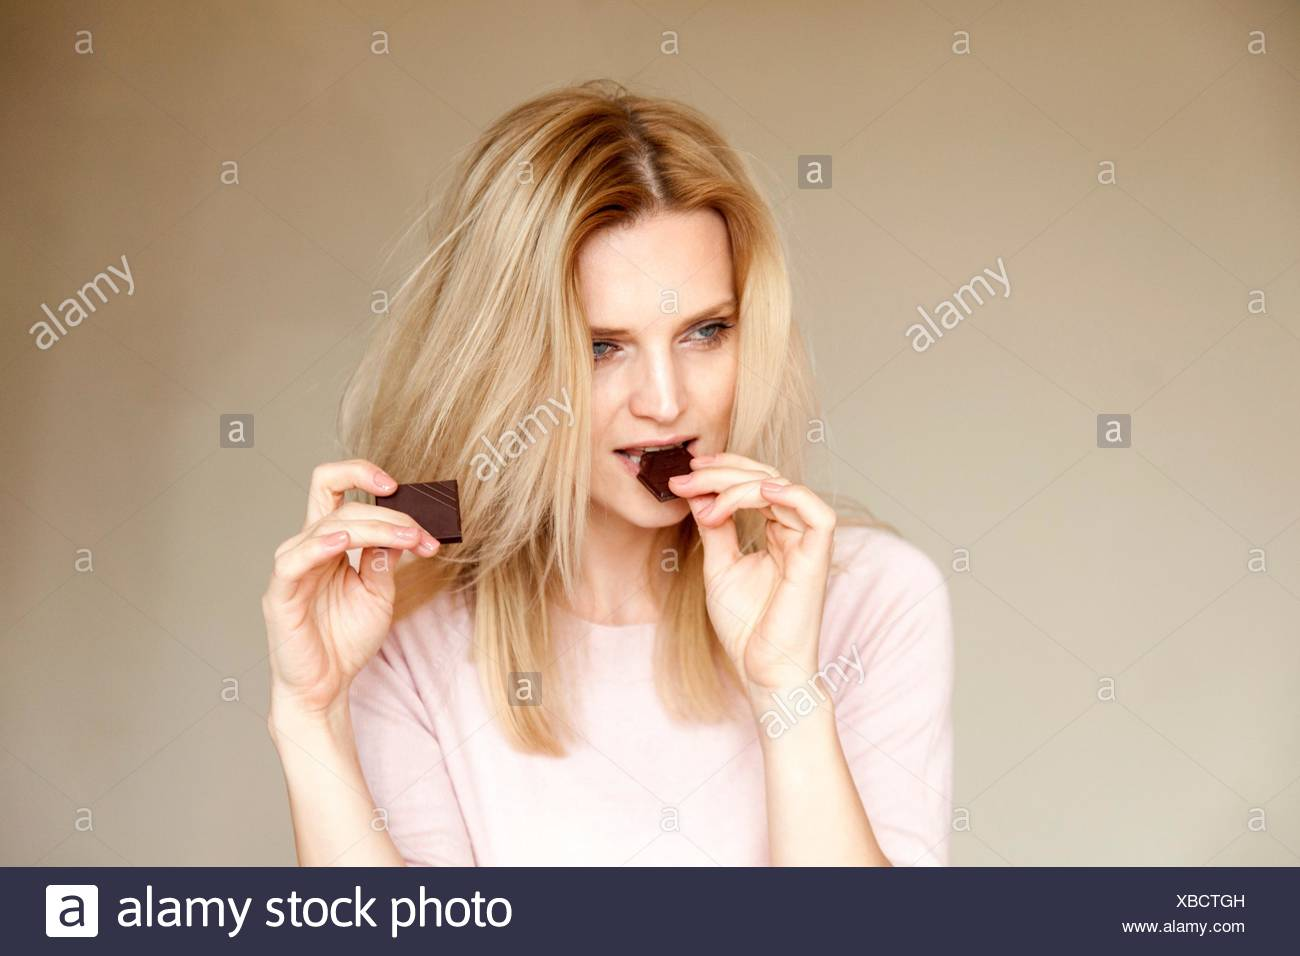 Portrait of beautiful woman with long blond hair eating chocolate bar Stock Photo